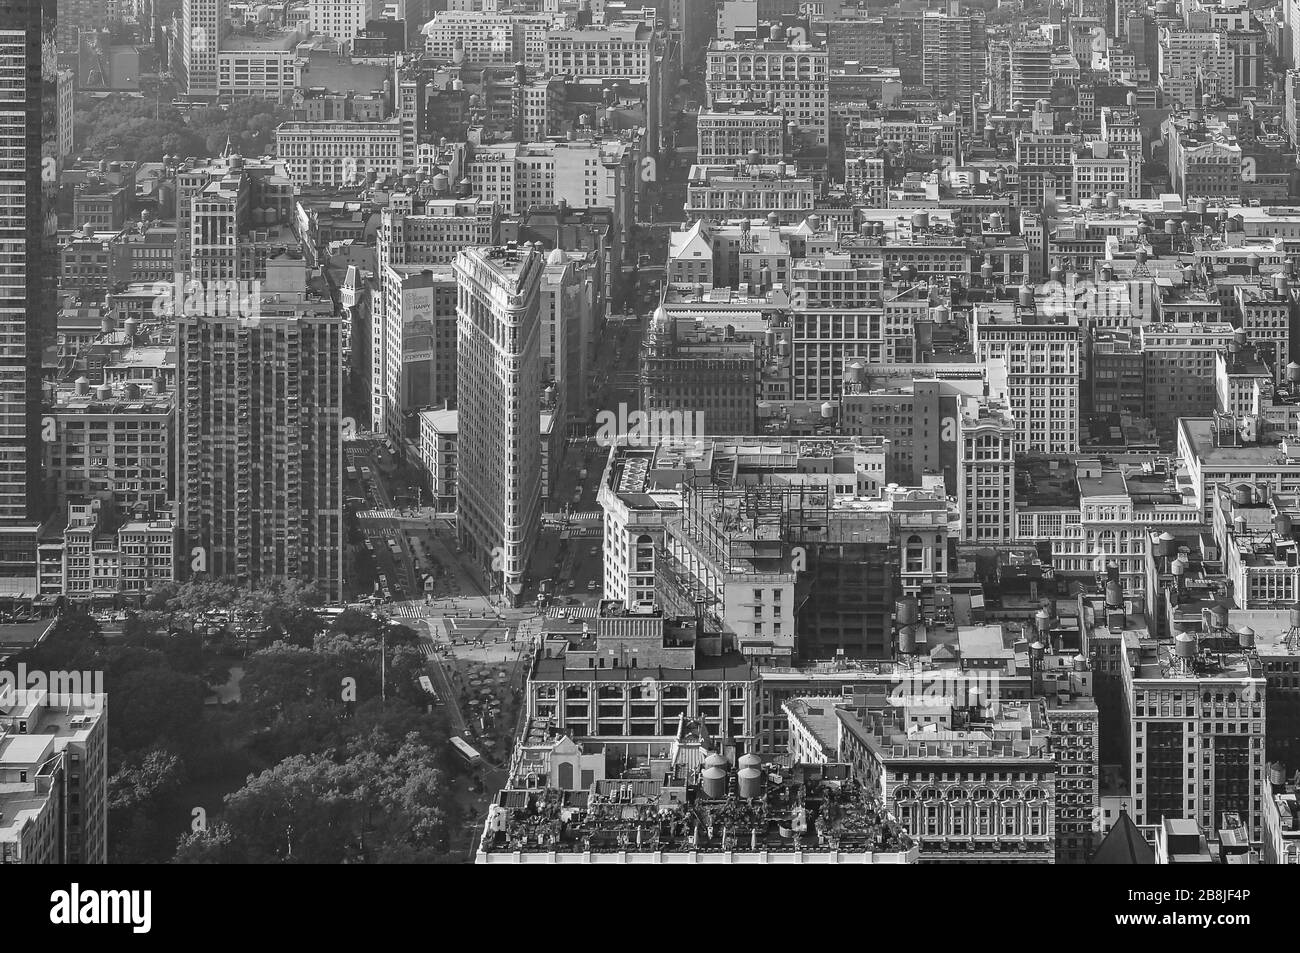 The popular flatiron buliding in New York with the impressive view from above as a black and white image, Stock Photo